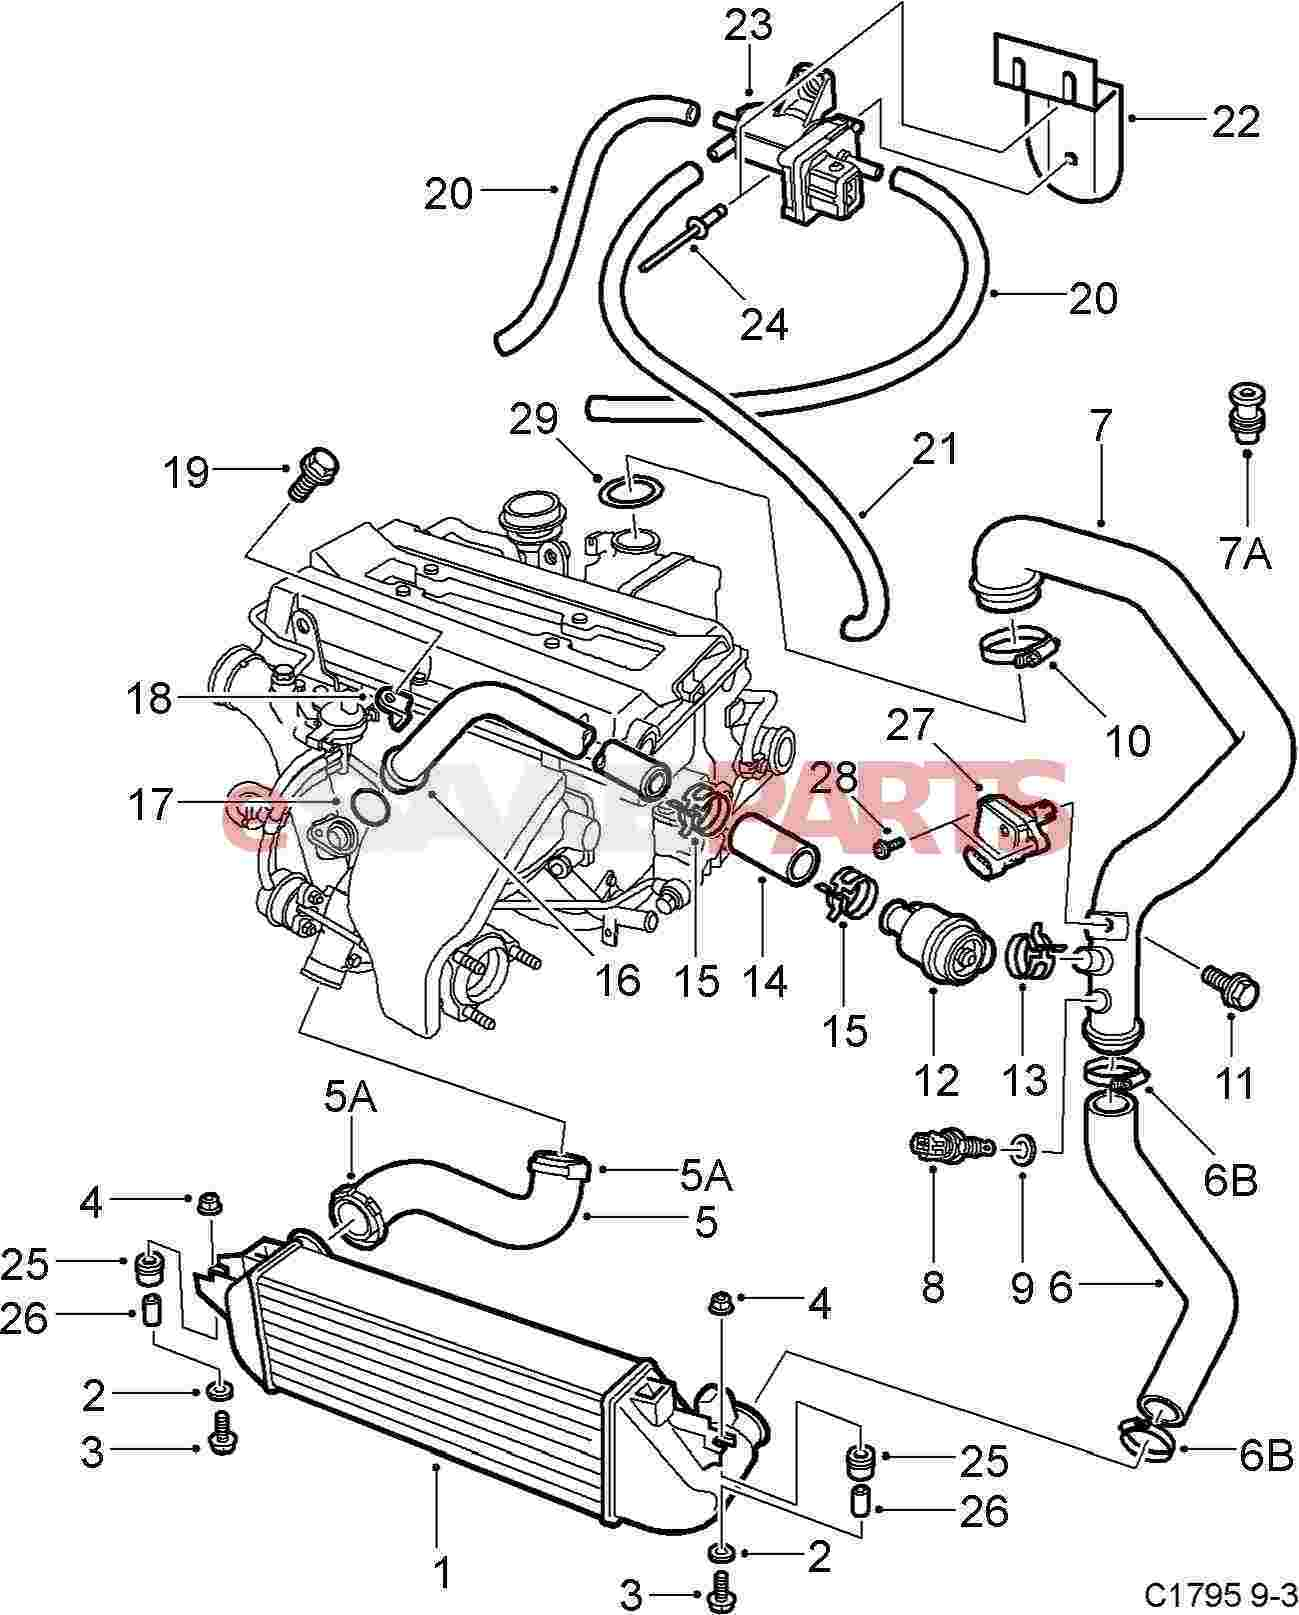 hight resolution of 2007 saab 9 3 engine diagram blog wiring diagram 03 saab 9 3 engine diagram